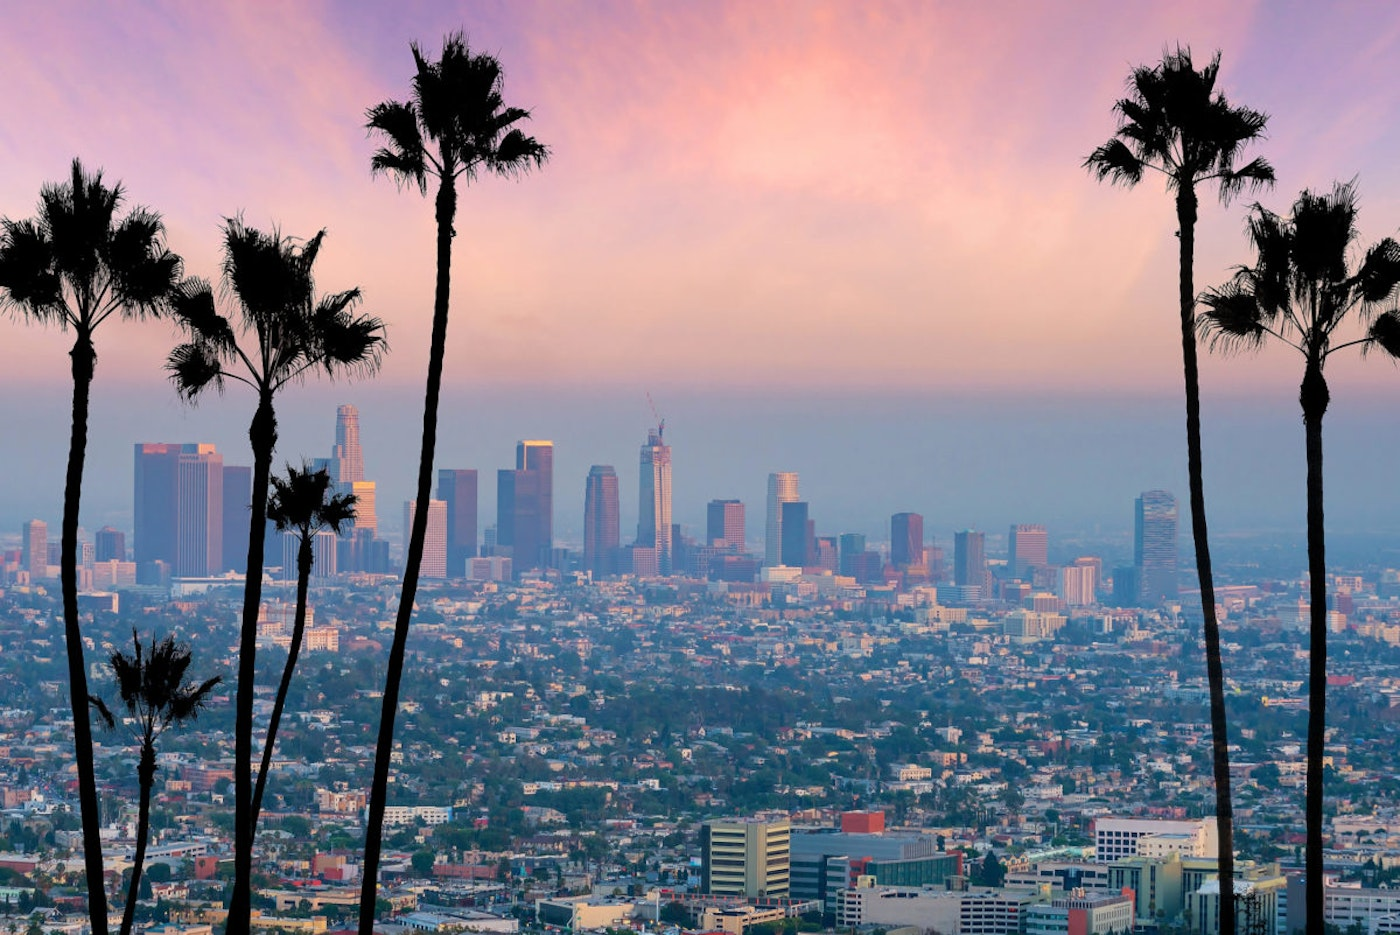 Los Angeles is among the cities where a guaranteed minimum income pilot program may be launched soon (Shutterstock).